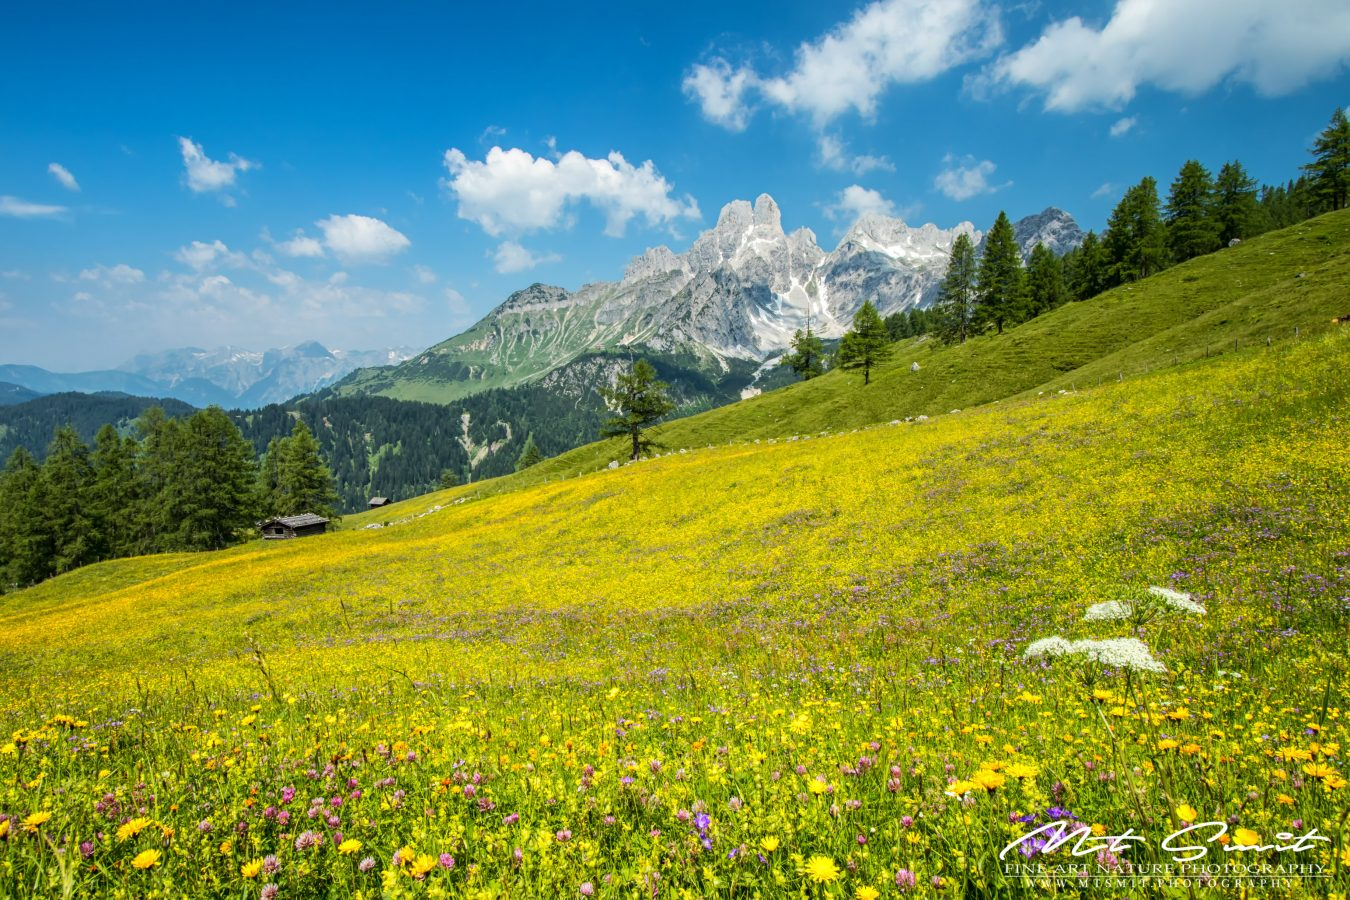 ALPINE_MEADOW